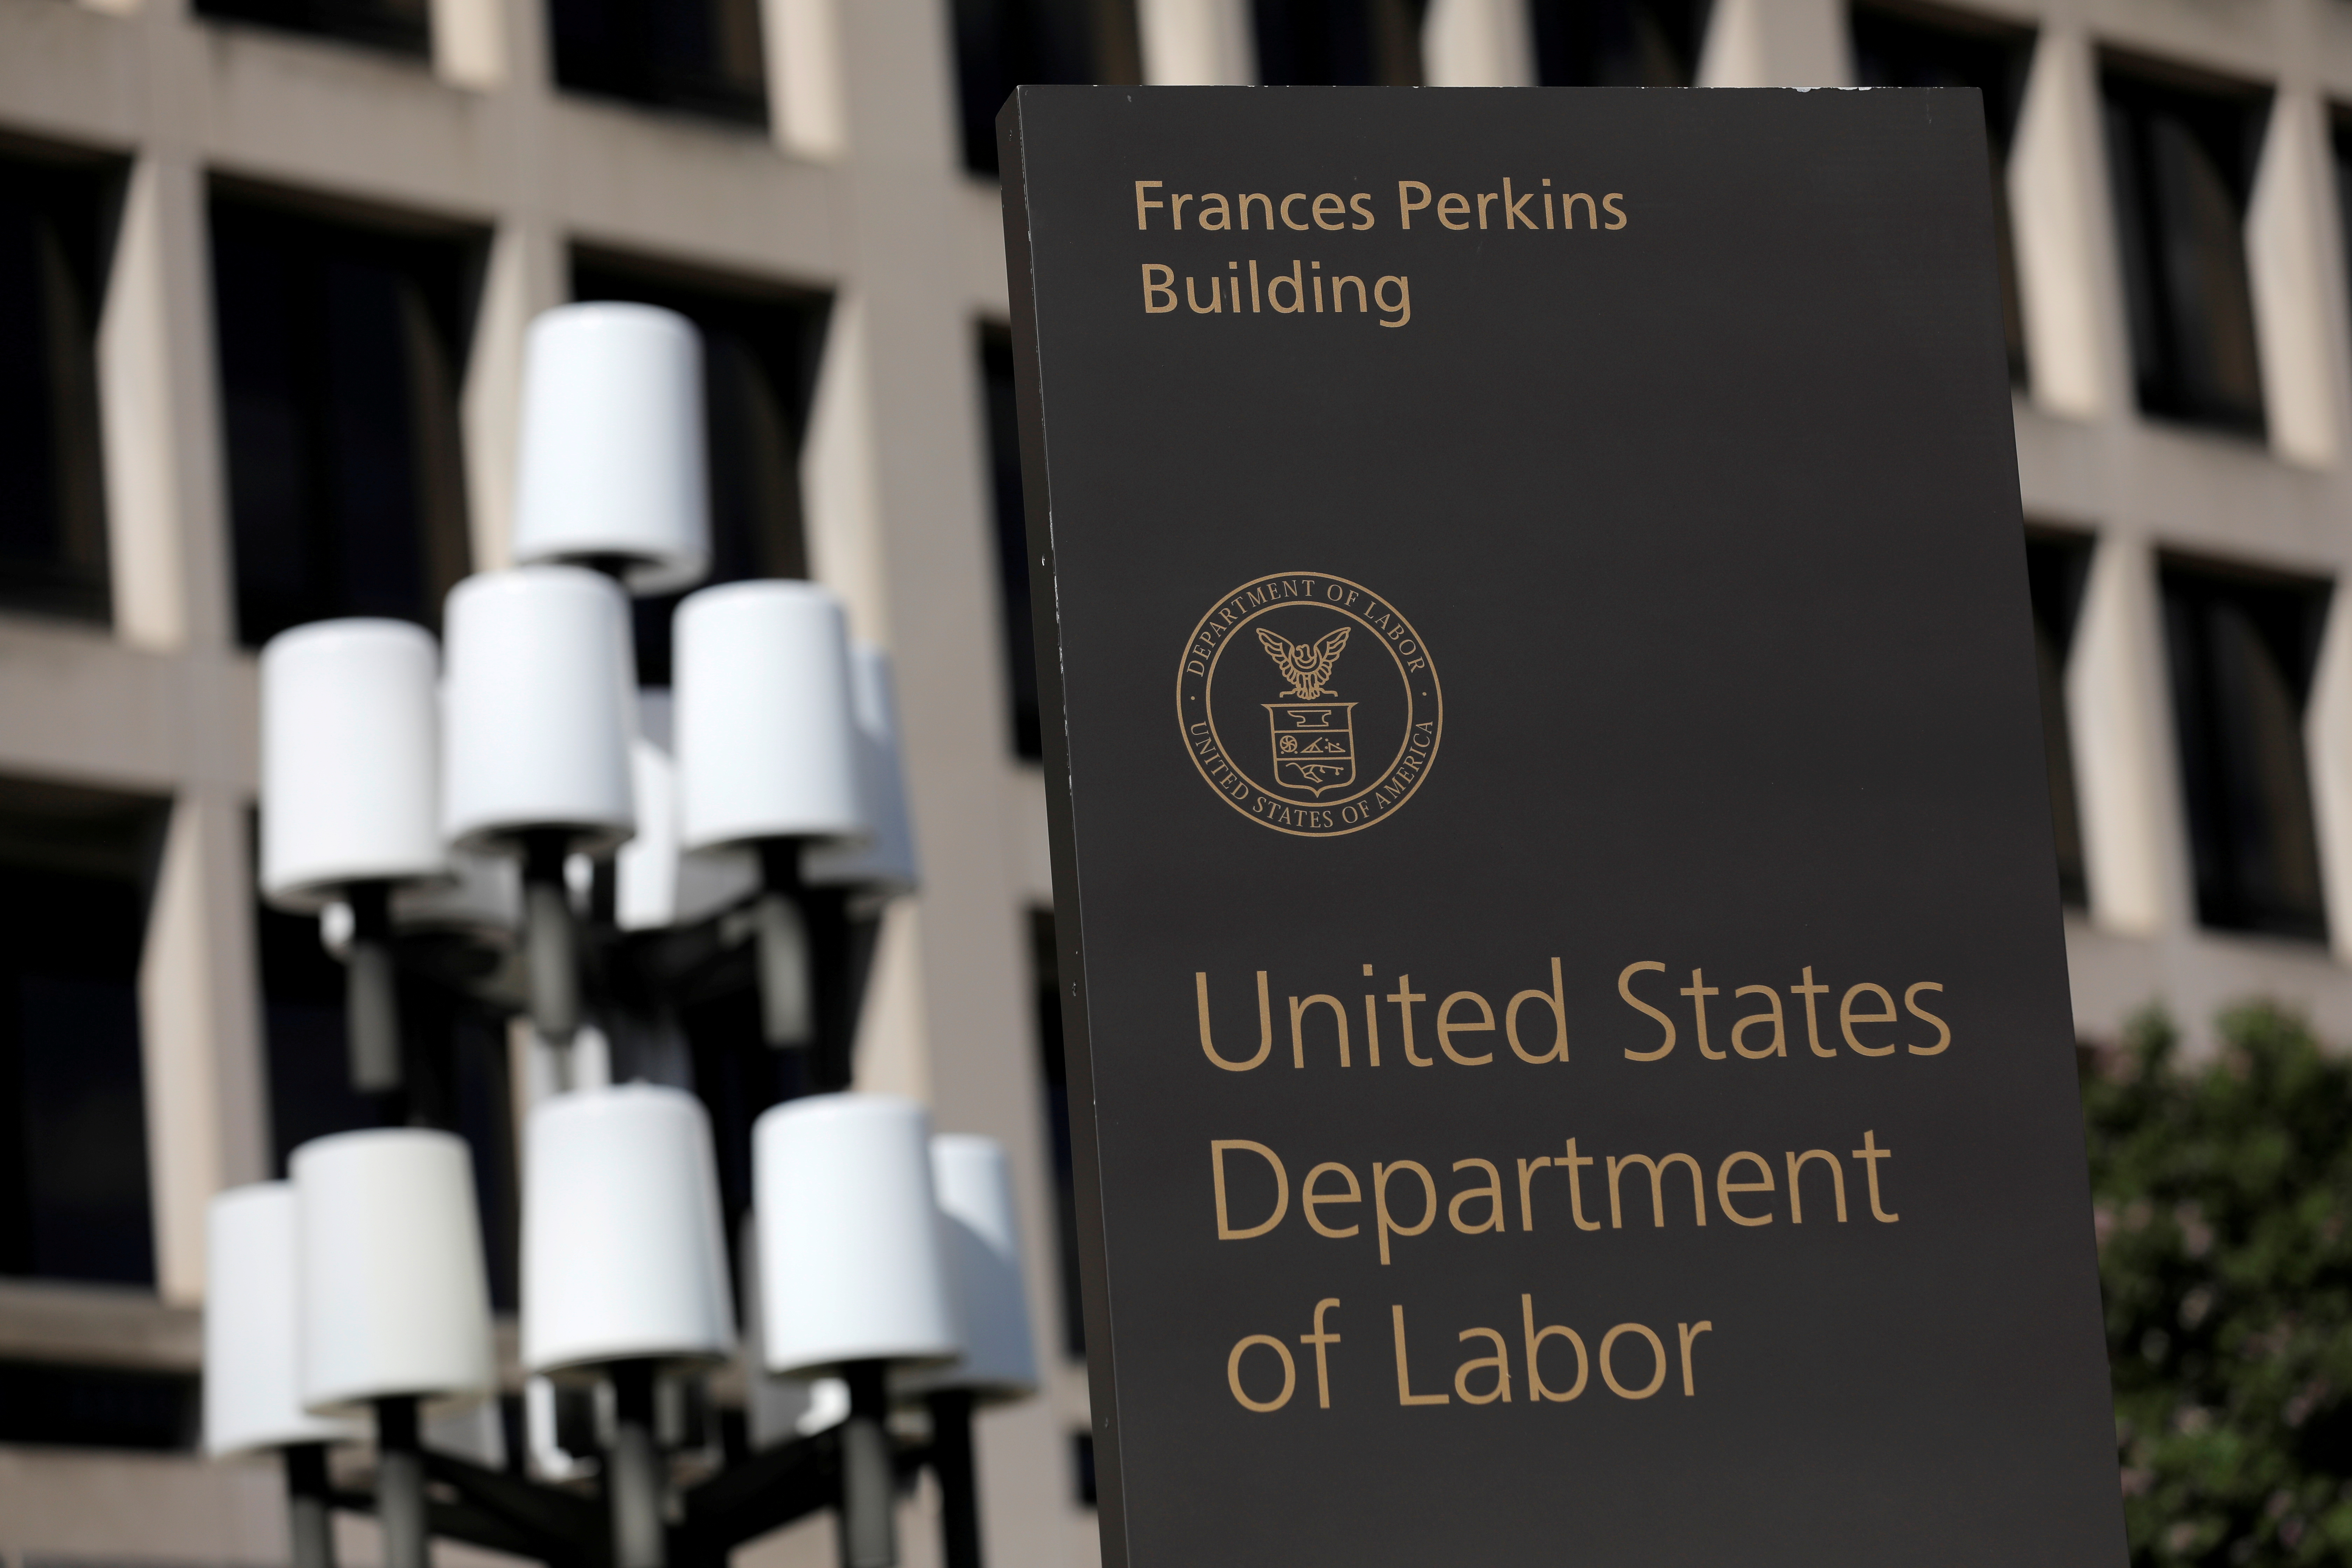 The United States Department of Labor is seen in Washington, D.C., U.S., August 30, 2020. REUTERS/Andrew Kelly